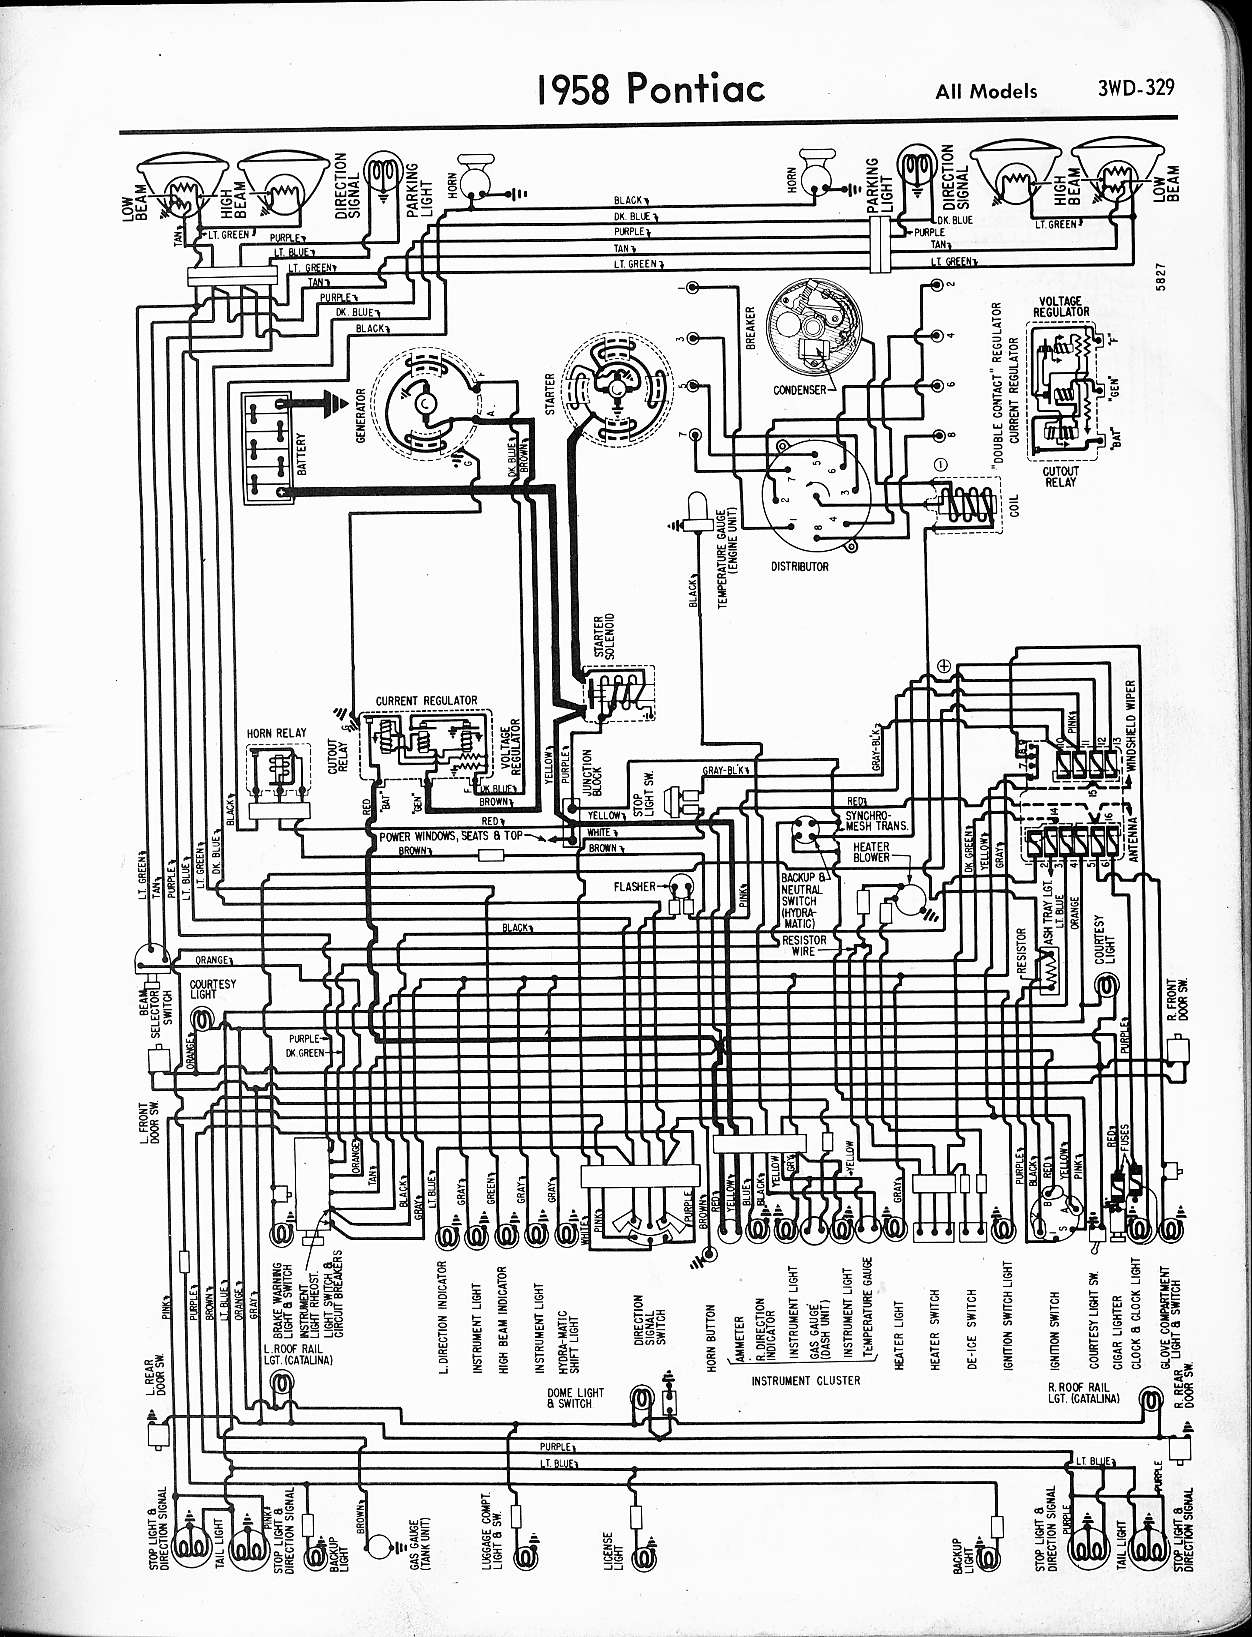 72 pontiac lemans wiring diagram 69 pontiac lemans wiring diagram